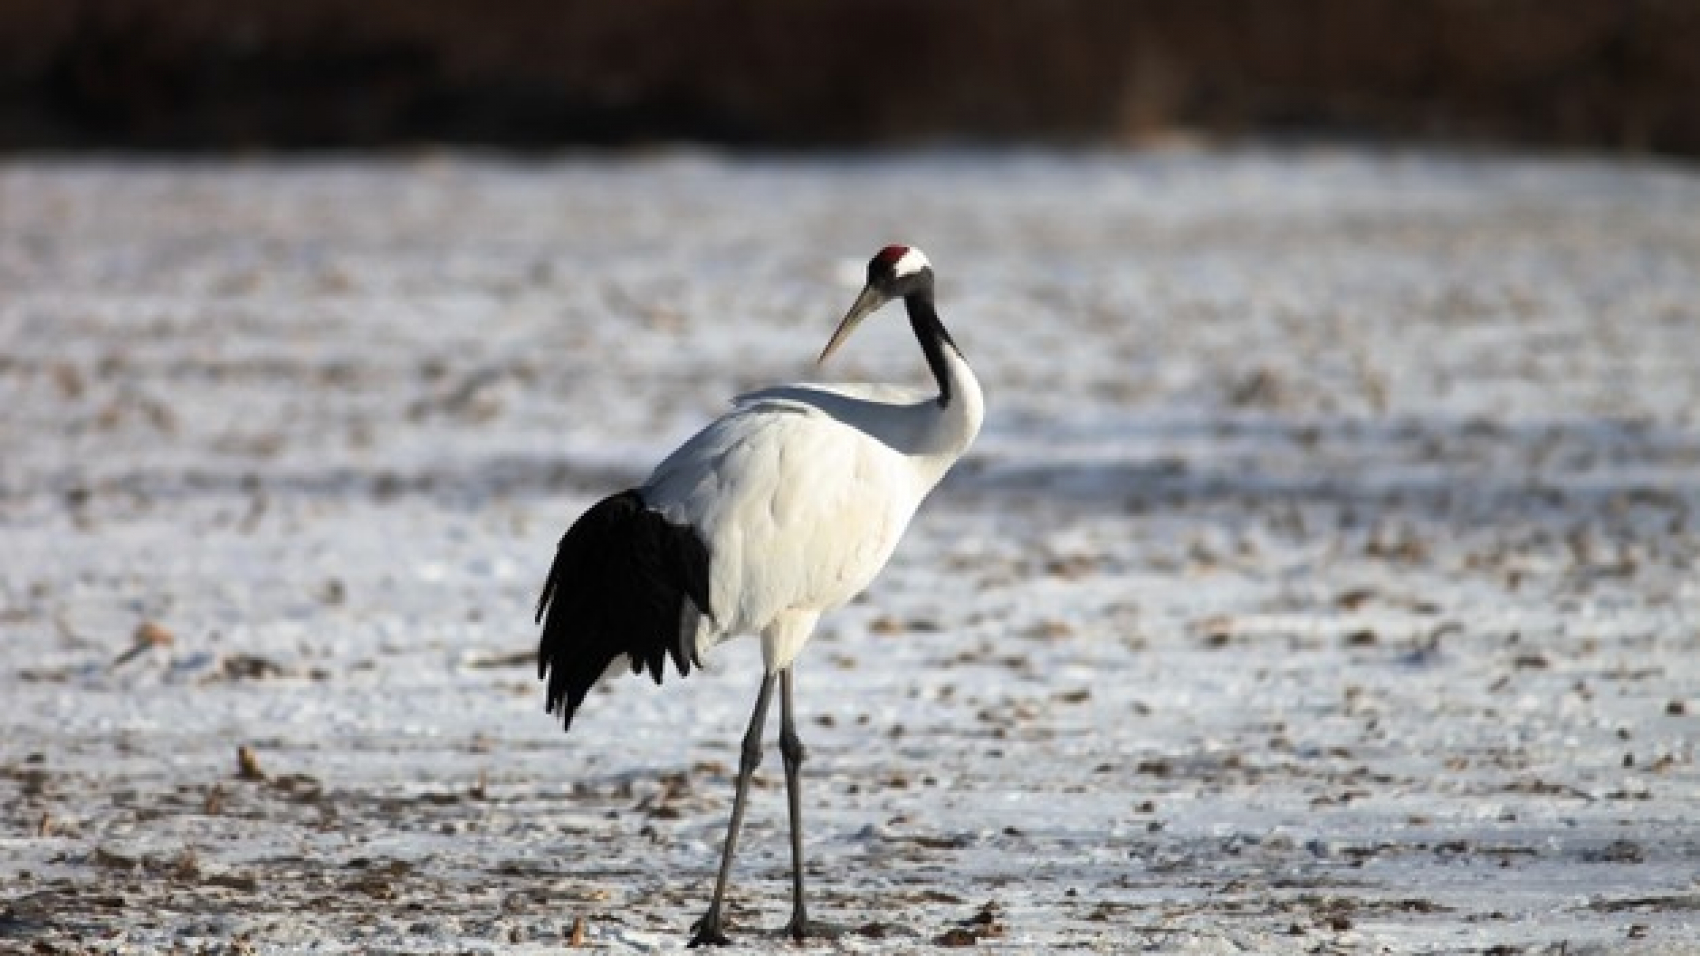 black-necked-crane-standing-on-the-ground-covered-in-the-snow-in-hokkaido-in-japan_181624-15351